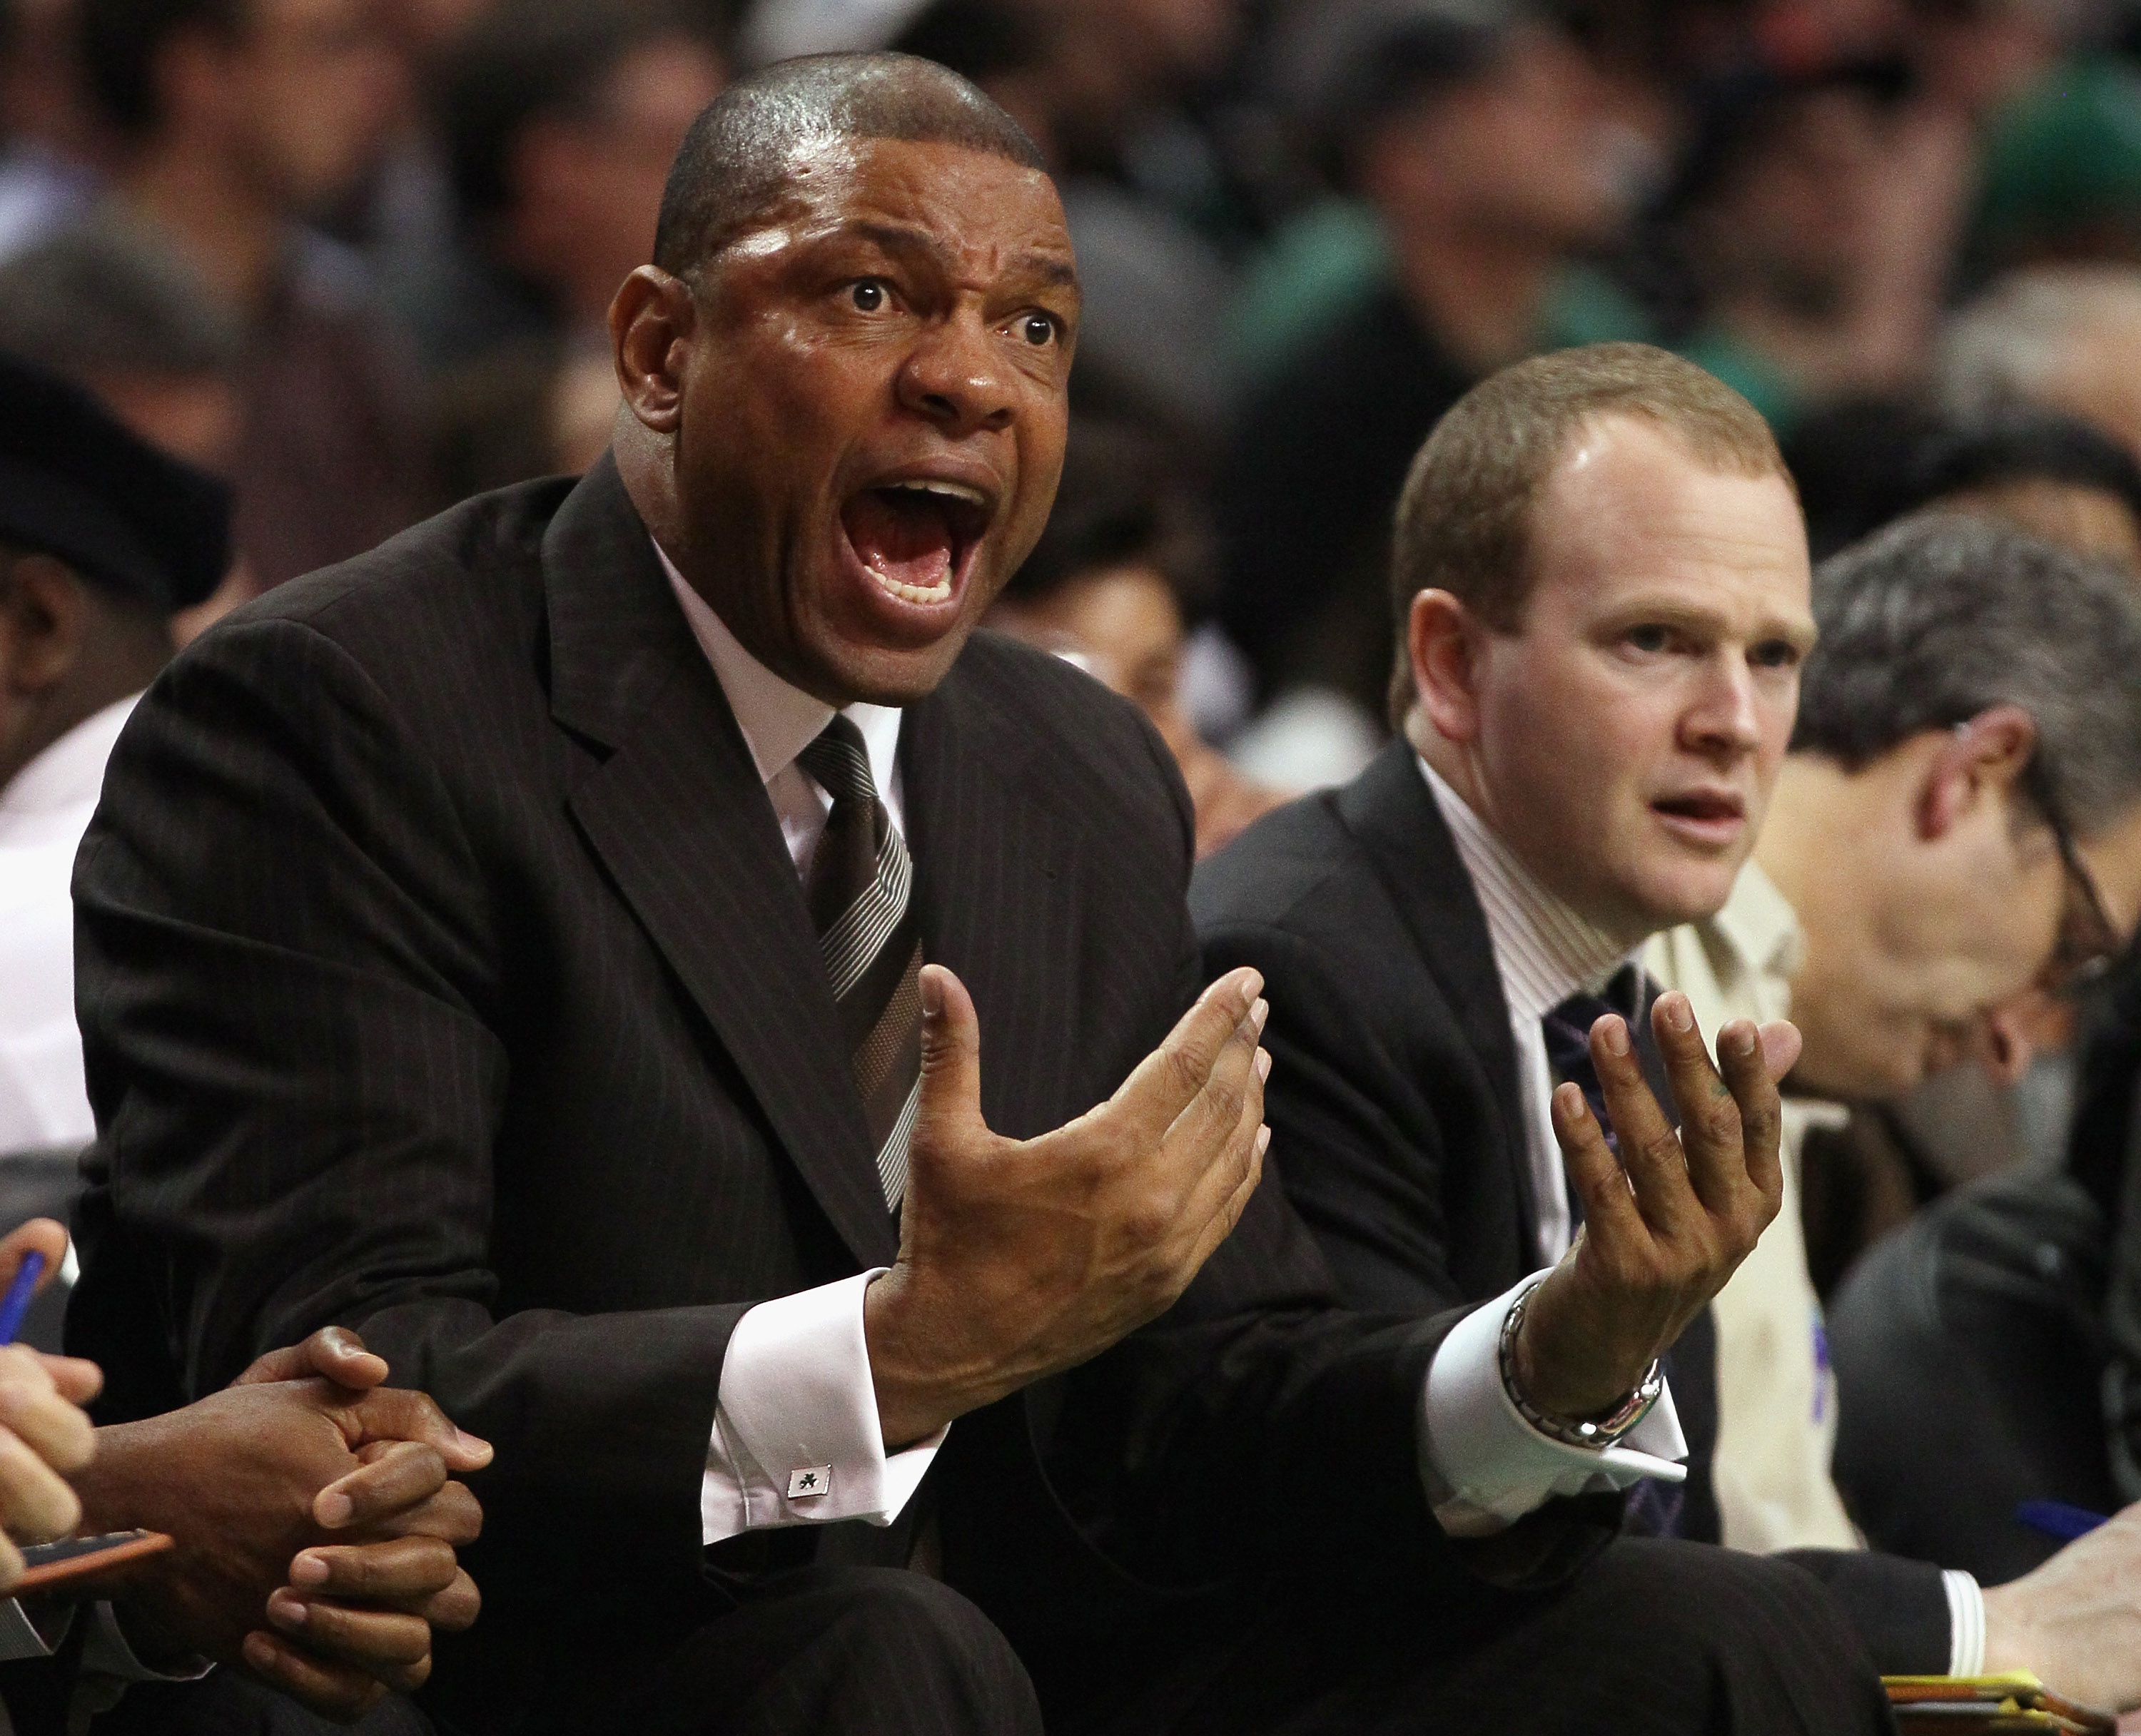 BOSTON, MA - MARCH 09:  Doc Rivers of the Boston Celtics directs his players from the bench in the second half against the Los Angeles Clippers on March 9, 2011 at the TD Garden in Boston, Massachusetts. The Los Angeles Clippers defeated the Boston Celtic